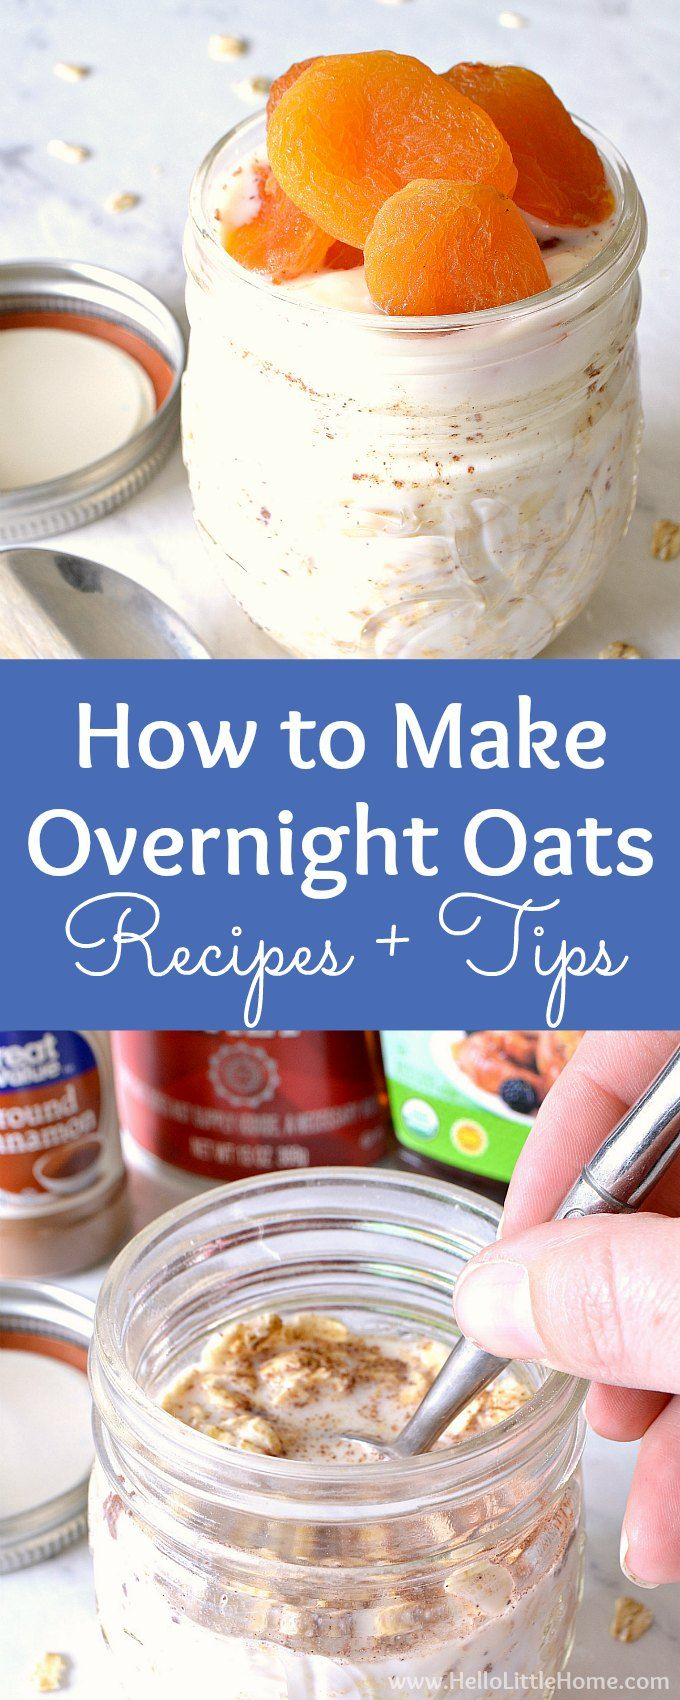 How to Make Overnight Oats … delicious recipes + tons of simple tips! This healthy overnight oats recipe is great for busy morning breakfasts. Make these easy overnight oats in a jar, then try one of the variations: with milk or yogurt, overnight oats without yogurt, even dairy free and vegan overnight oats! This basic overnight oats recipe is healthy and perfect for clean eating! | Hello Little Home